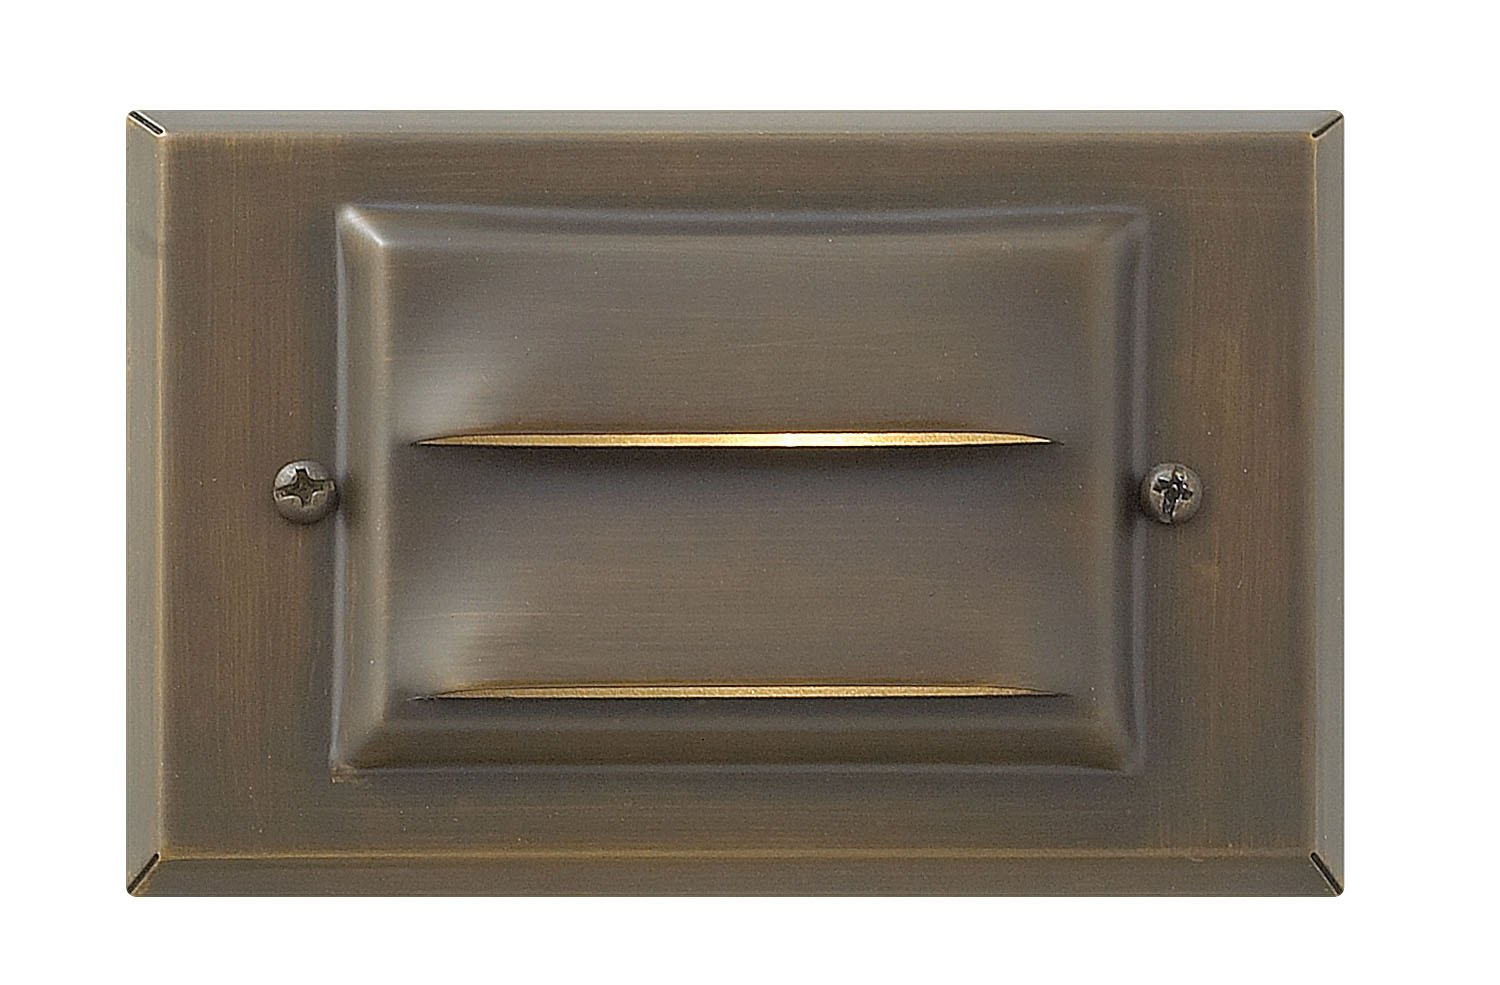 Hinkley Lighting Landscape Deck Light - Hardscape Deck Light to Illuminate Exteriors and Increase Home Security, Matte Bronze Finish, Hardy Island Collection, 1546MZ